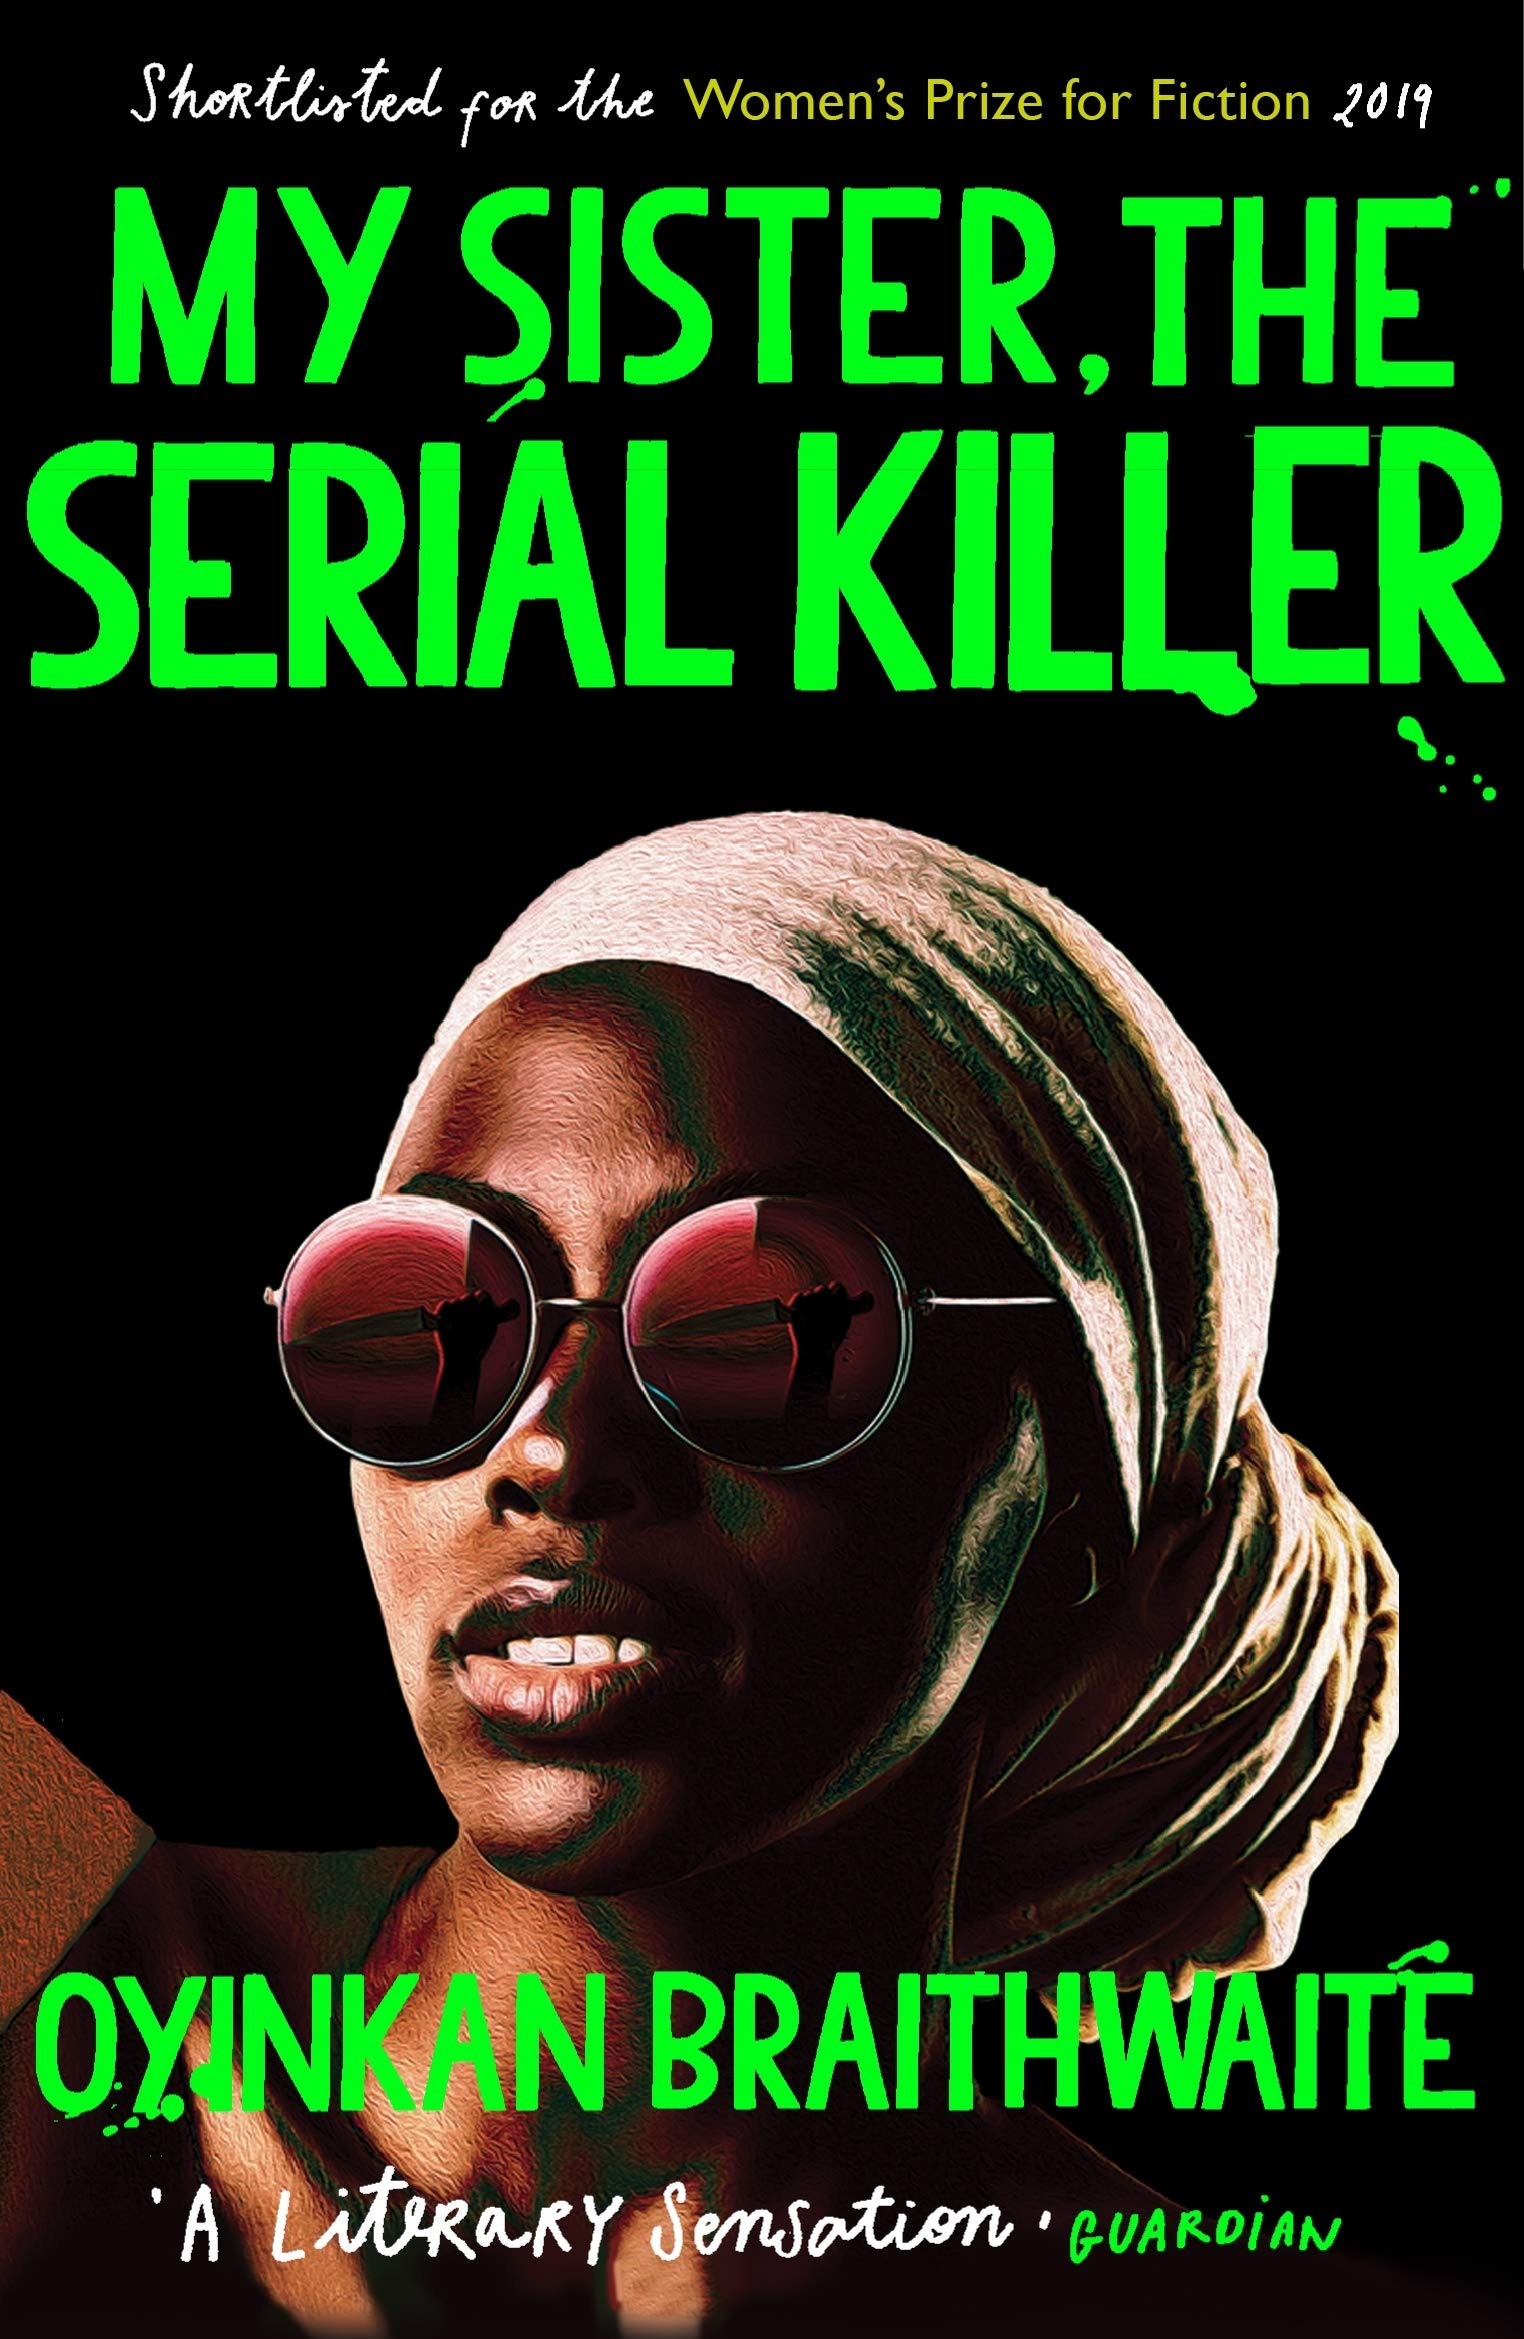 My Sister, the Serial Killer: The Sunday Times Bestseller: Amazon.co.uk:  Braithwaite, Oyinkan: 9781786495983: Books